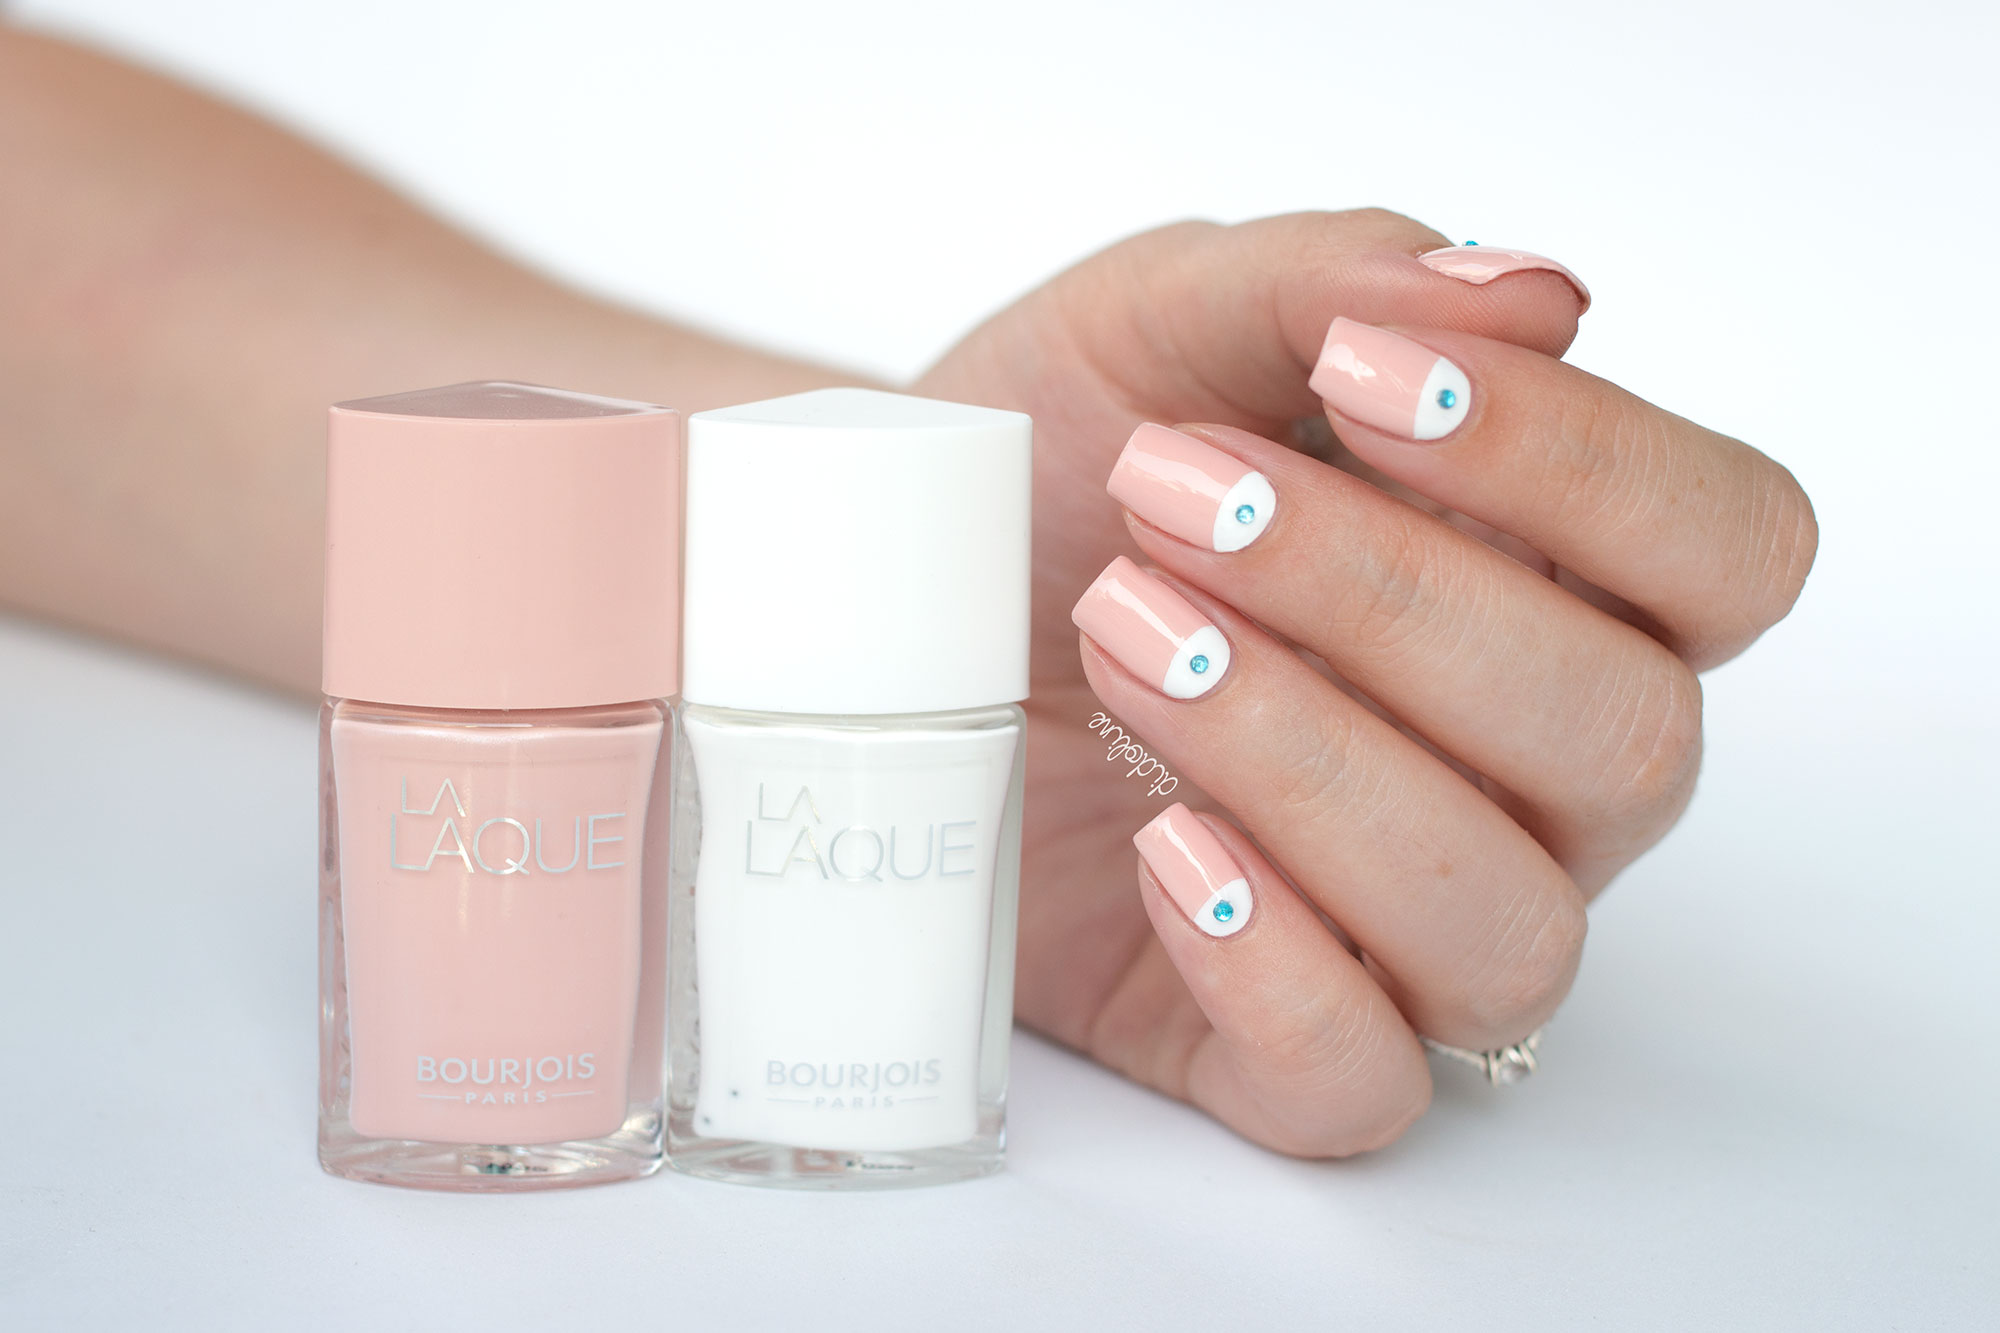 Bourjois - La Laque - Chair et Tendre - White Spirit - Eye Manicure